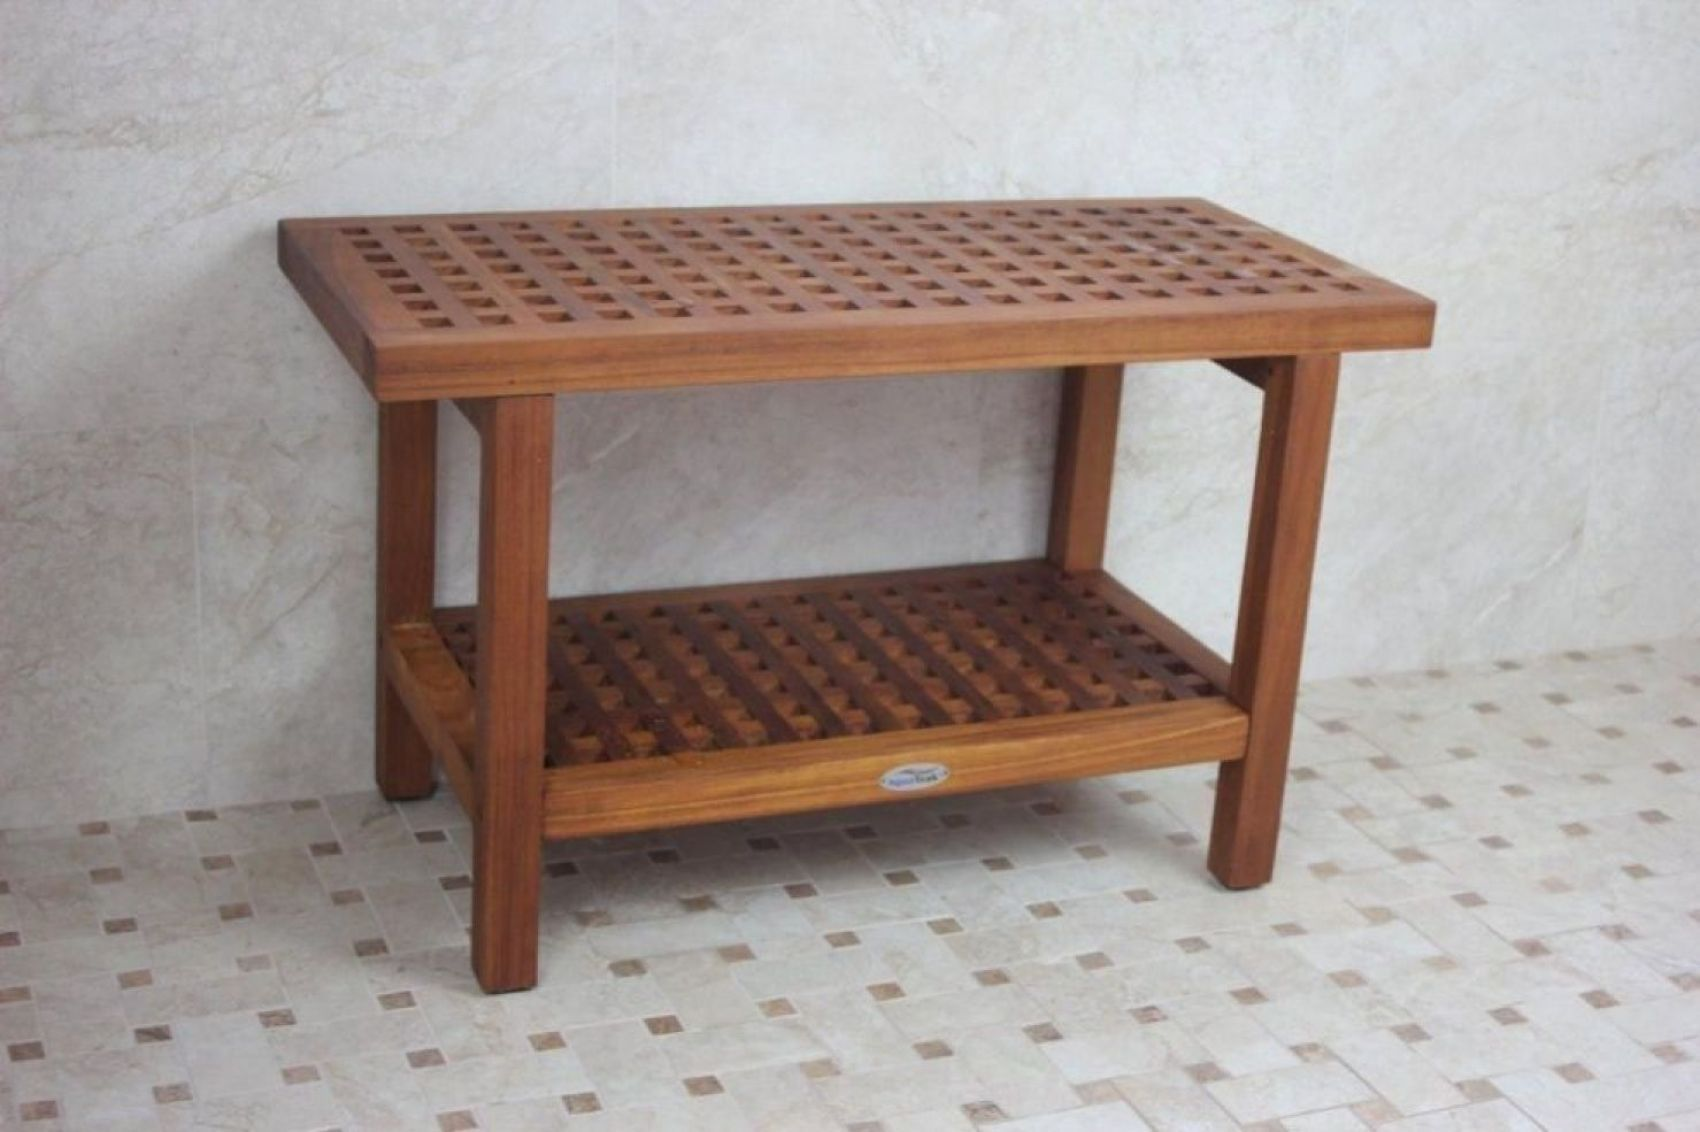 Pin by D Dimonte on teakwood | Pinterest | Shower bench teak, Shower ...